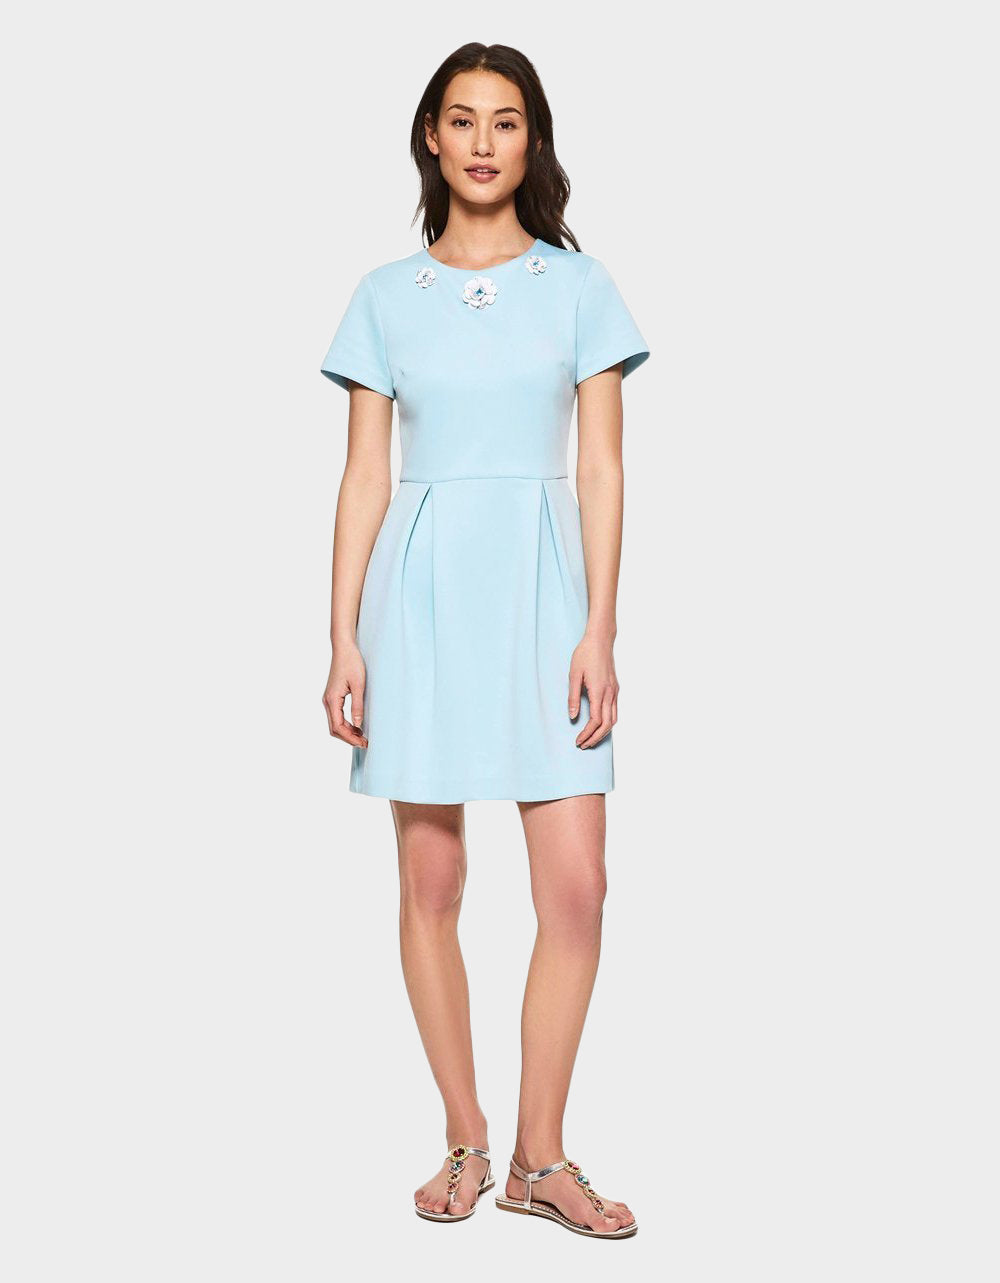 ICING ON TOP DRESS LIGHT BLUE - APPAREL - Betsey Johnson